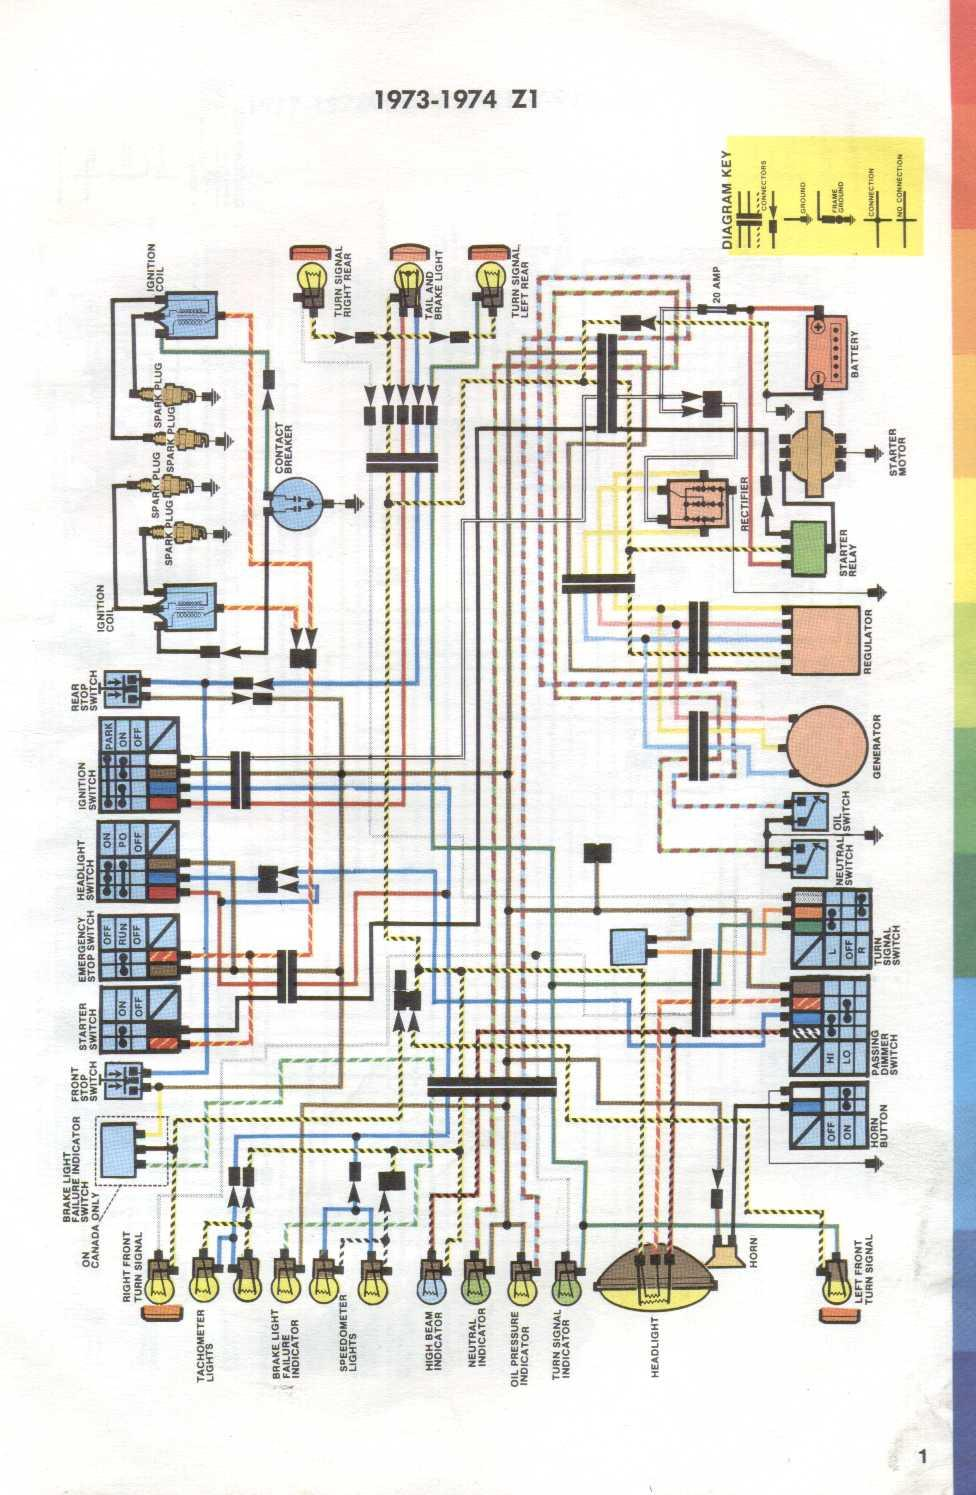 z1000 wiring diagram wiring diagram all  2004 kawasaki z1000 wiring diagram #10